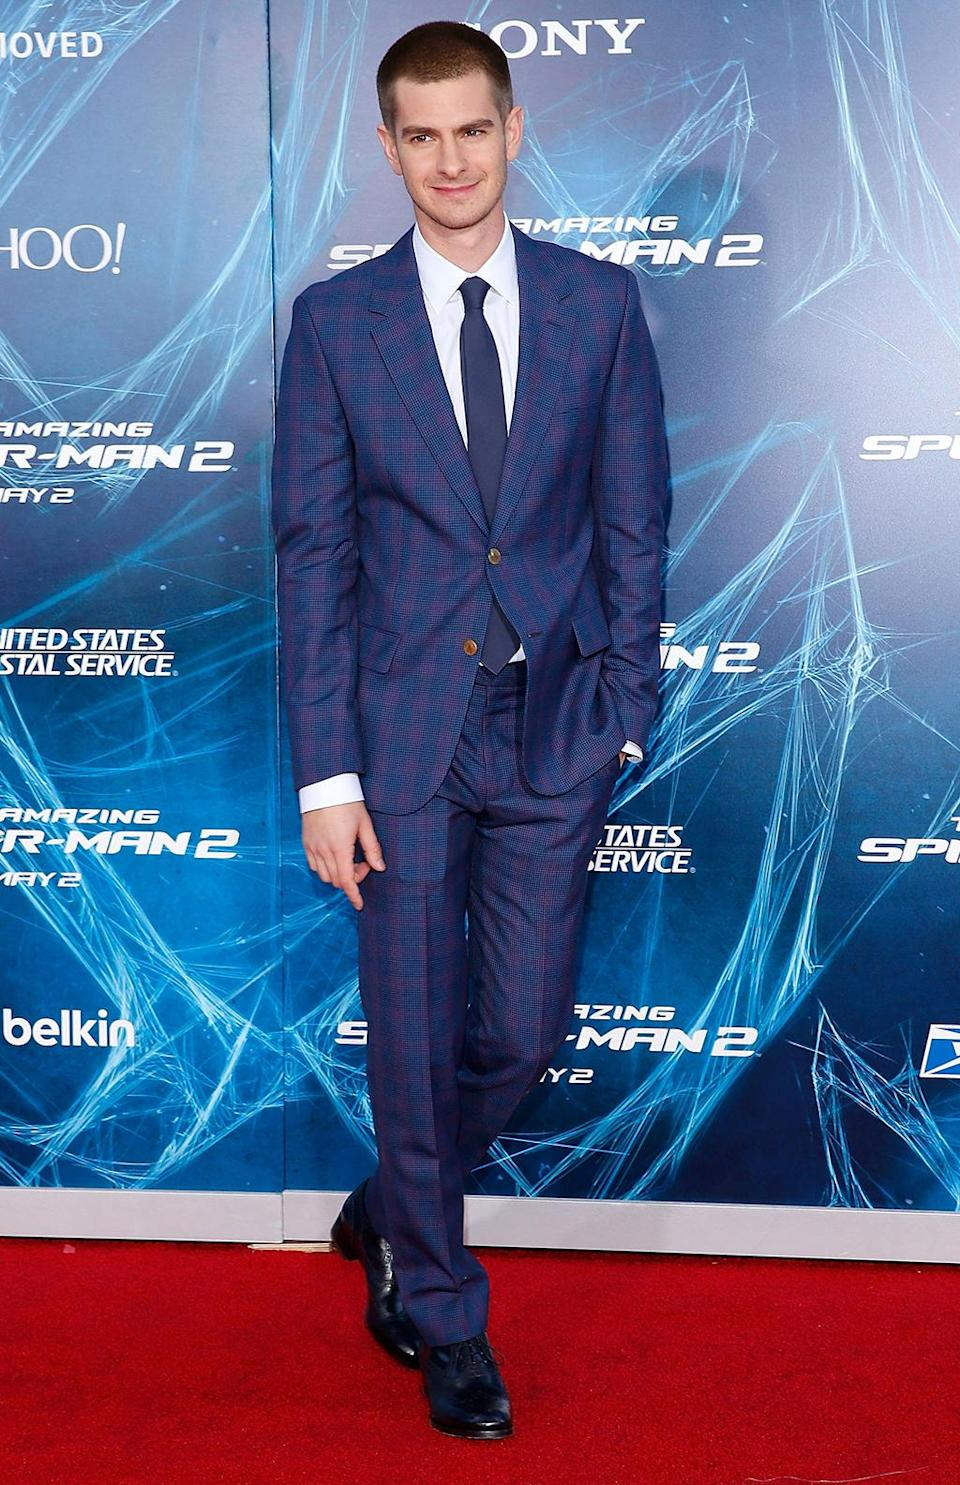 <p>Andrew Garfield reprised his role in the sequel, which was simply titled <em>The Amazing Spider-Man 2</em>. (Photo: Jemal Countess/Getty Images) </p>